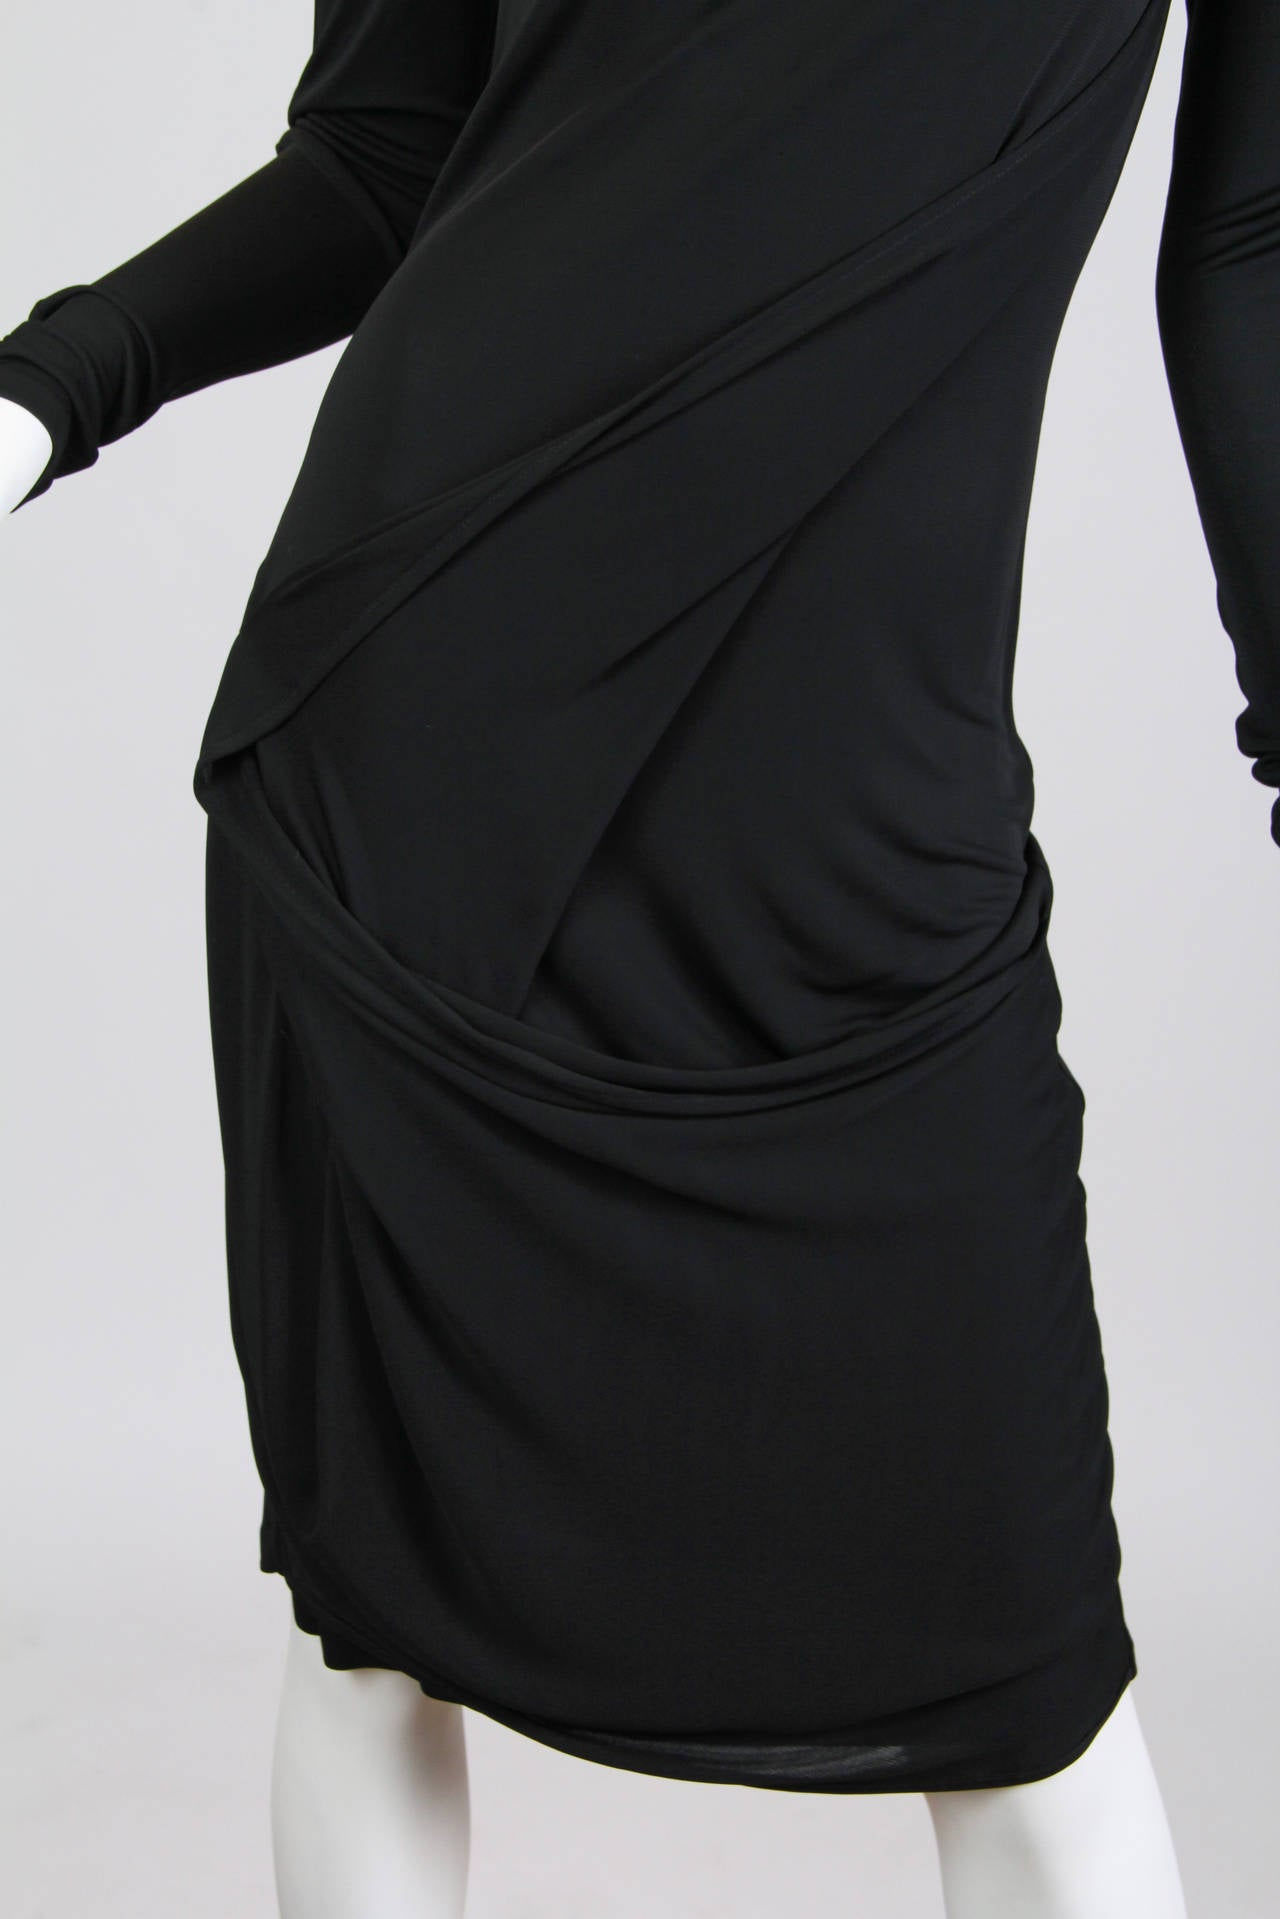 Martin Margiela Black Draped Jersey Dress 9